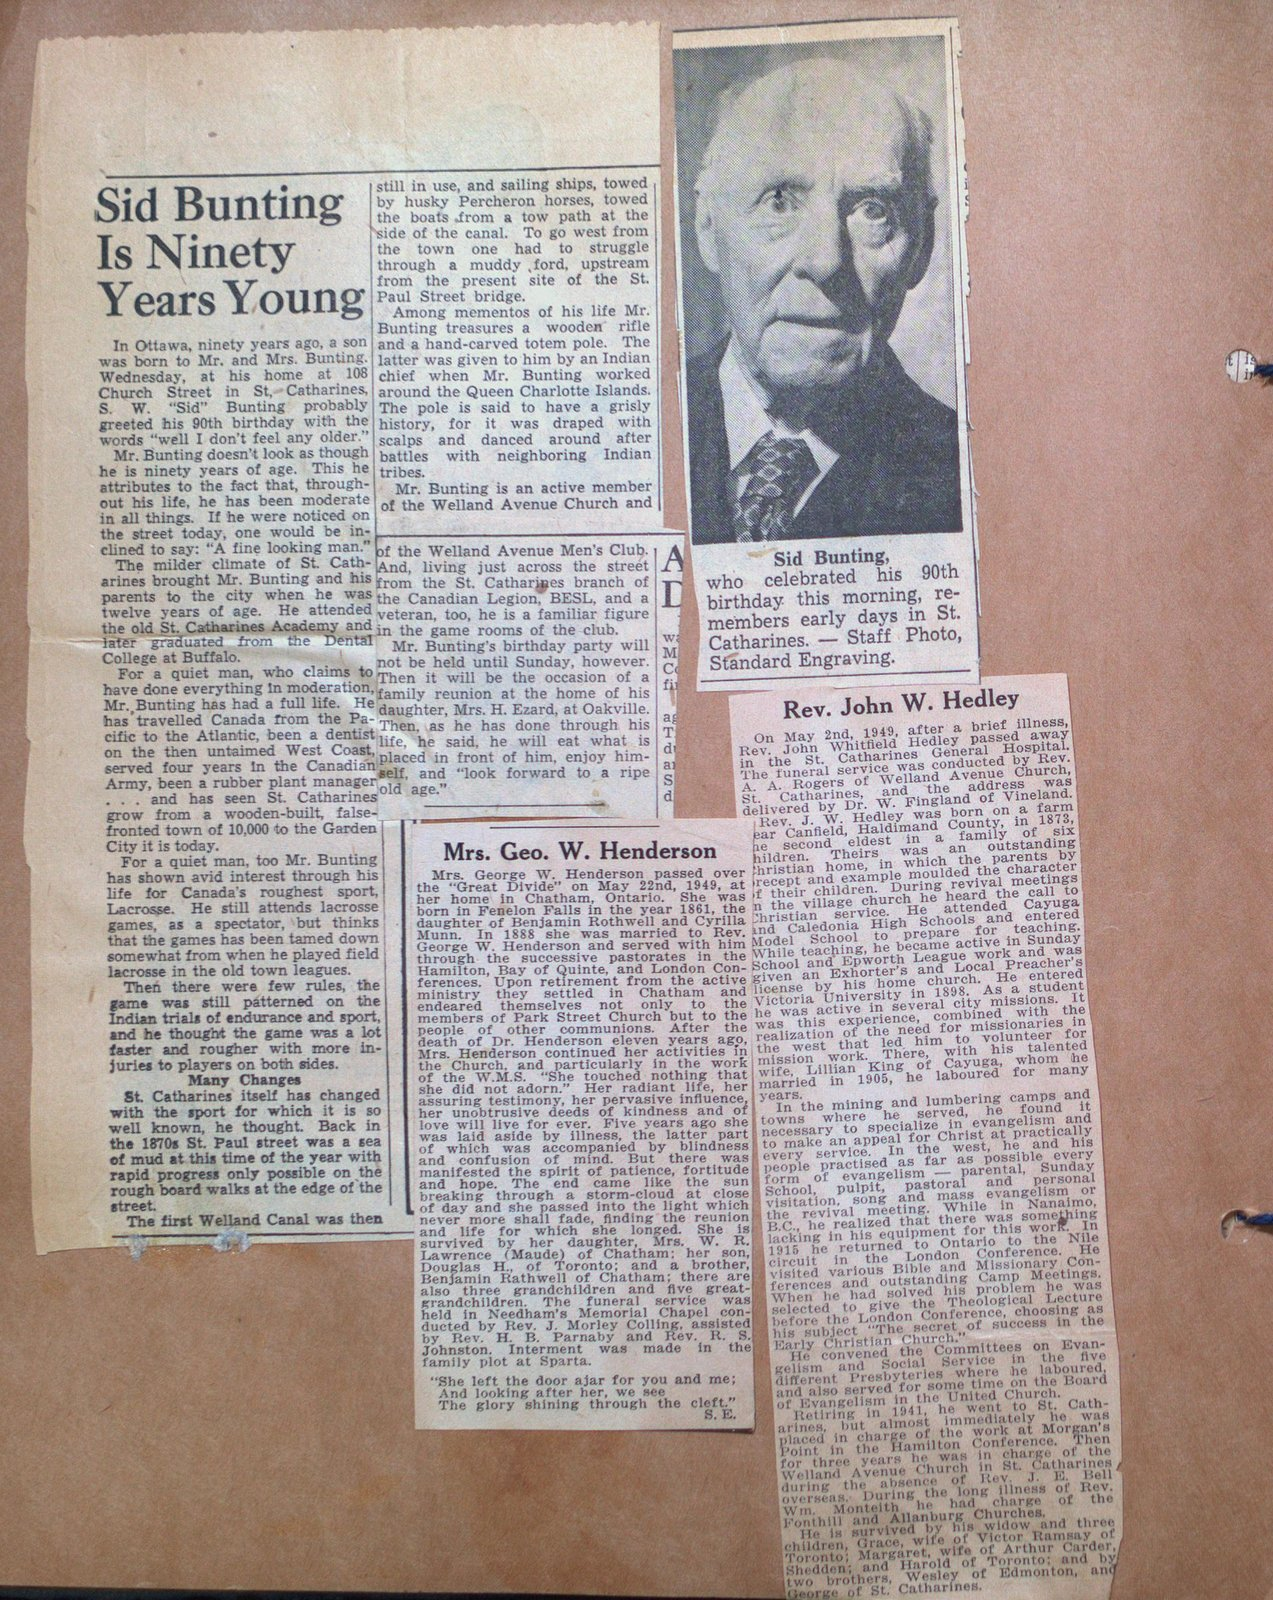 90th Birthday of Sid Bunting and Obituaries of Mrs. Henderson & Rev. John Hedley.